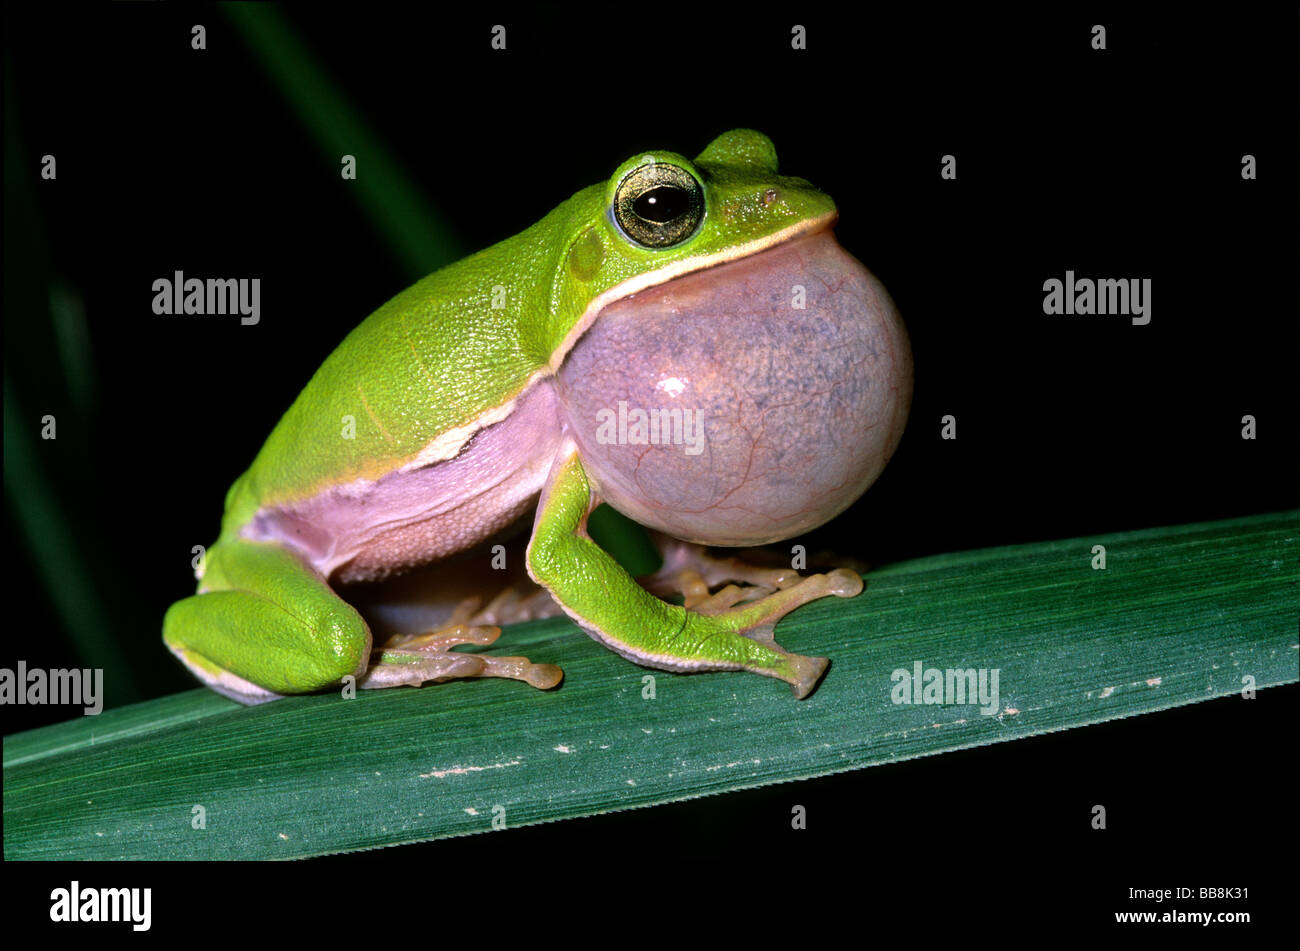 Tree frog (Rhacophorus arvalis), inflated vocal sac, courtship, endangered species, Taiwan, Asia - Stock Image